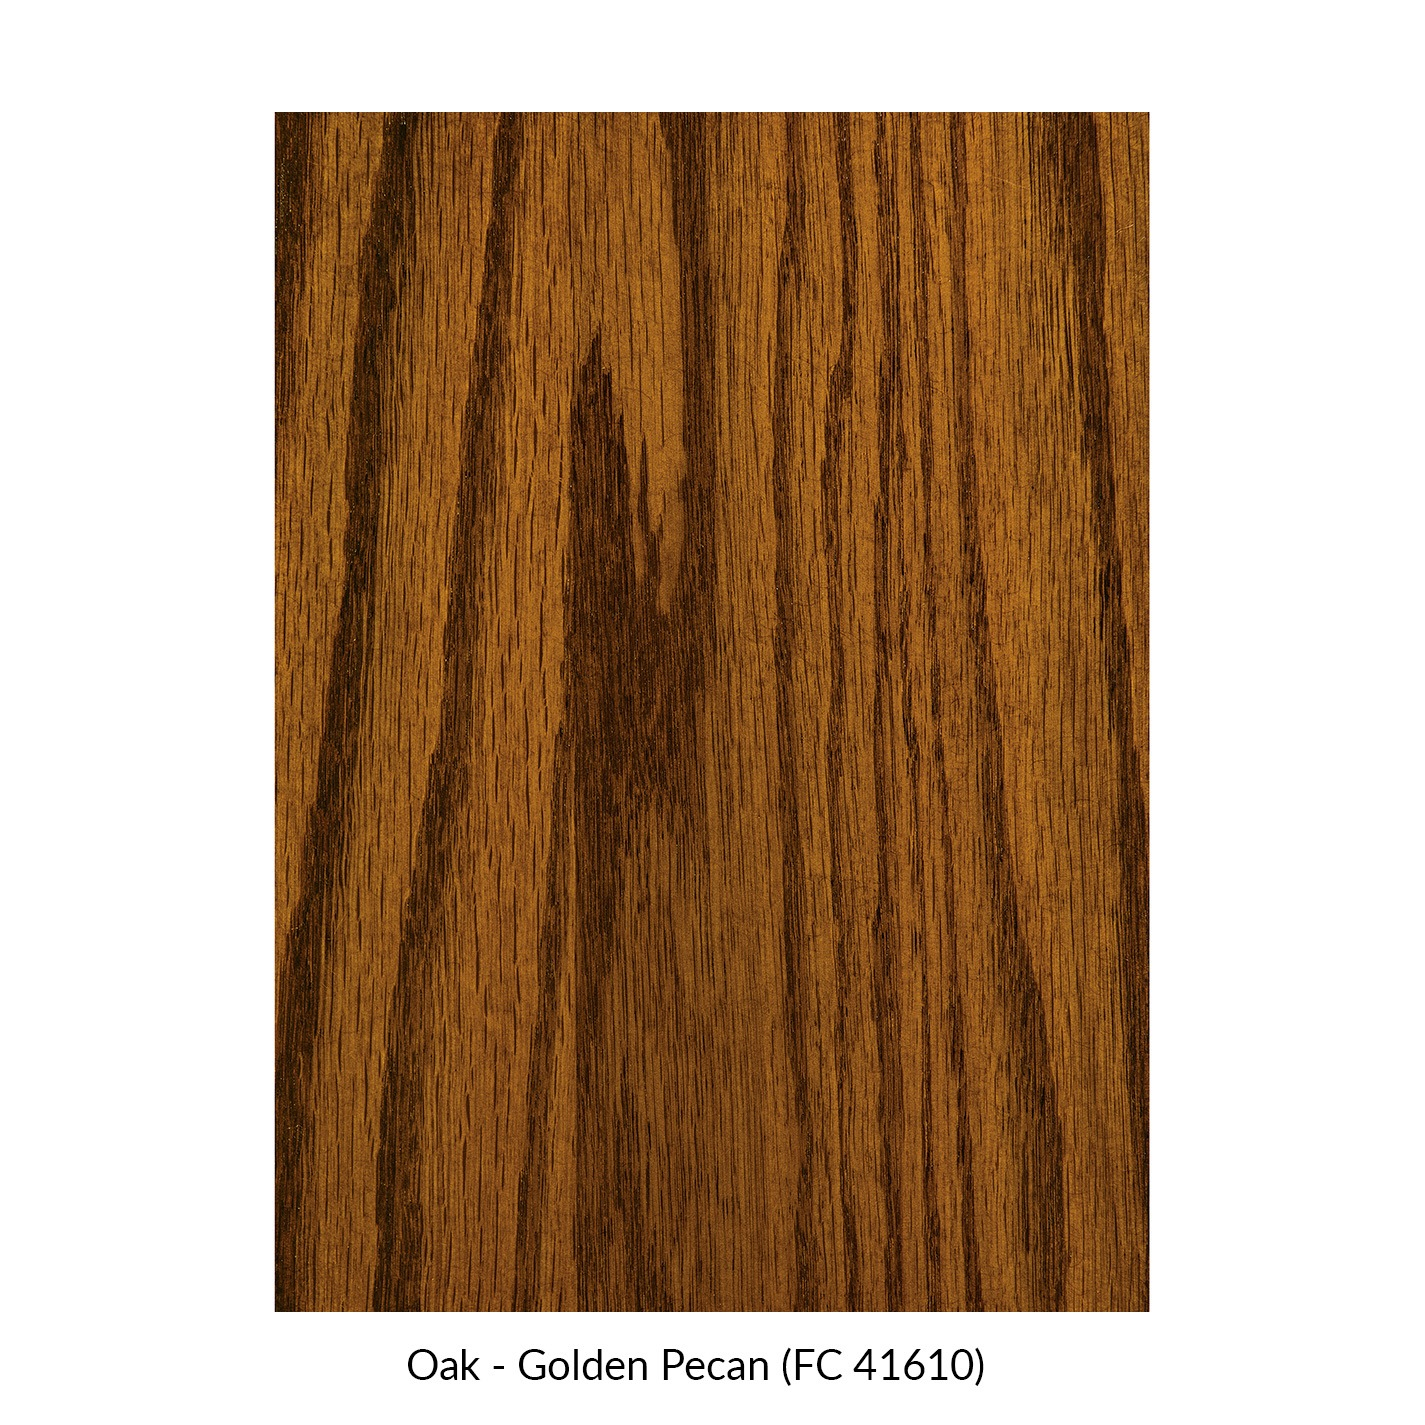 spectrum-oak-golden-pecan-fc-41610.jpg